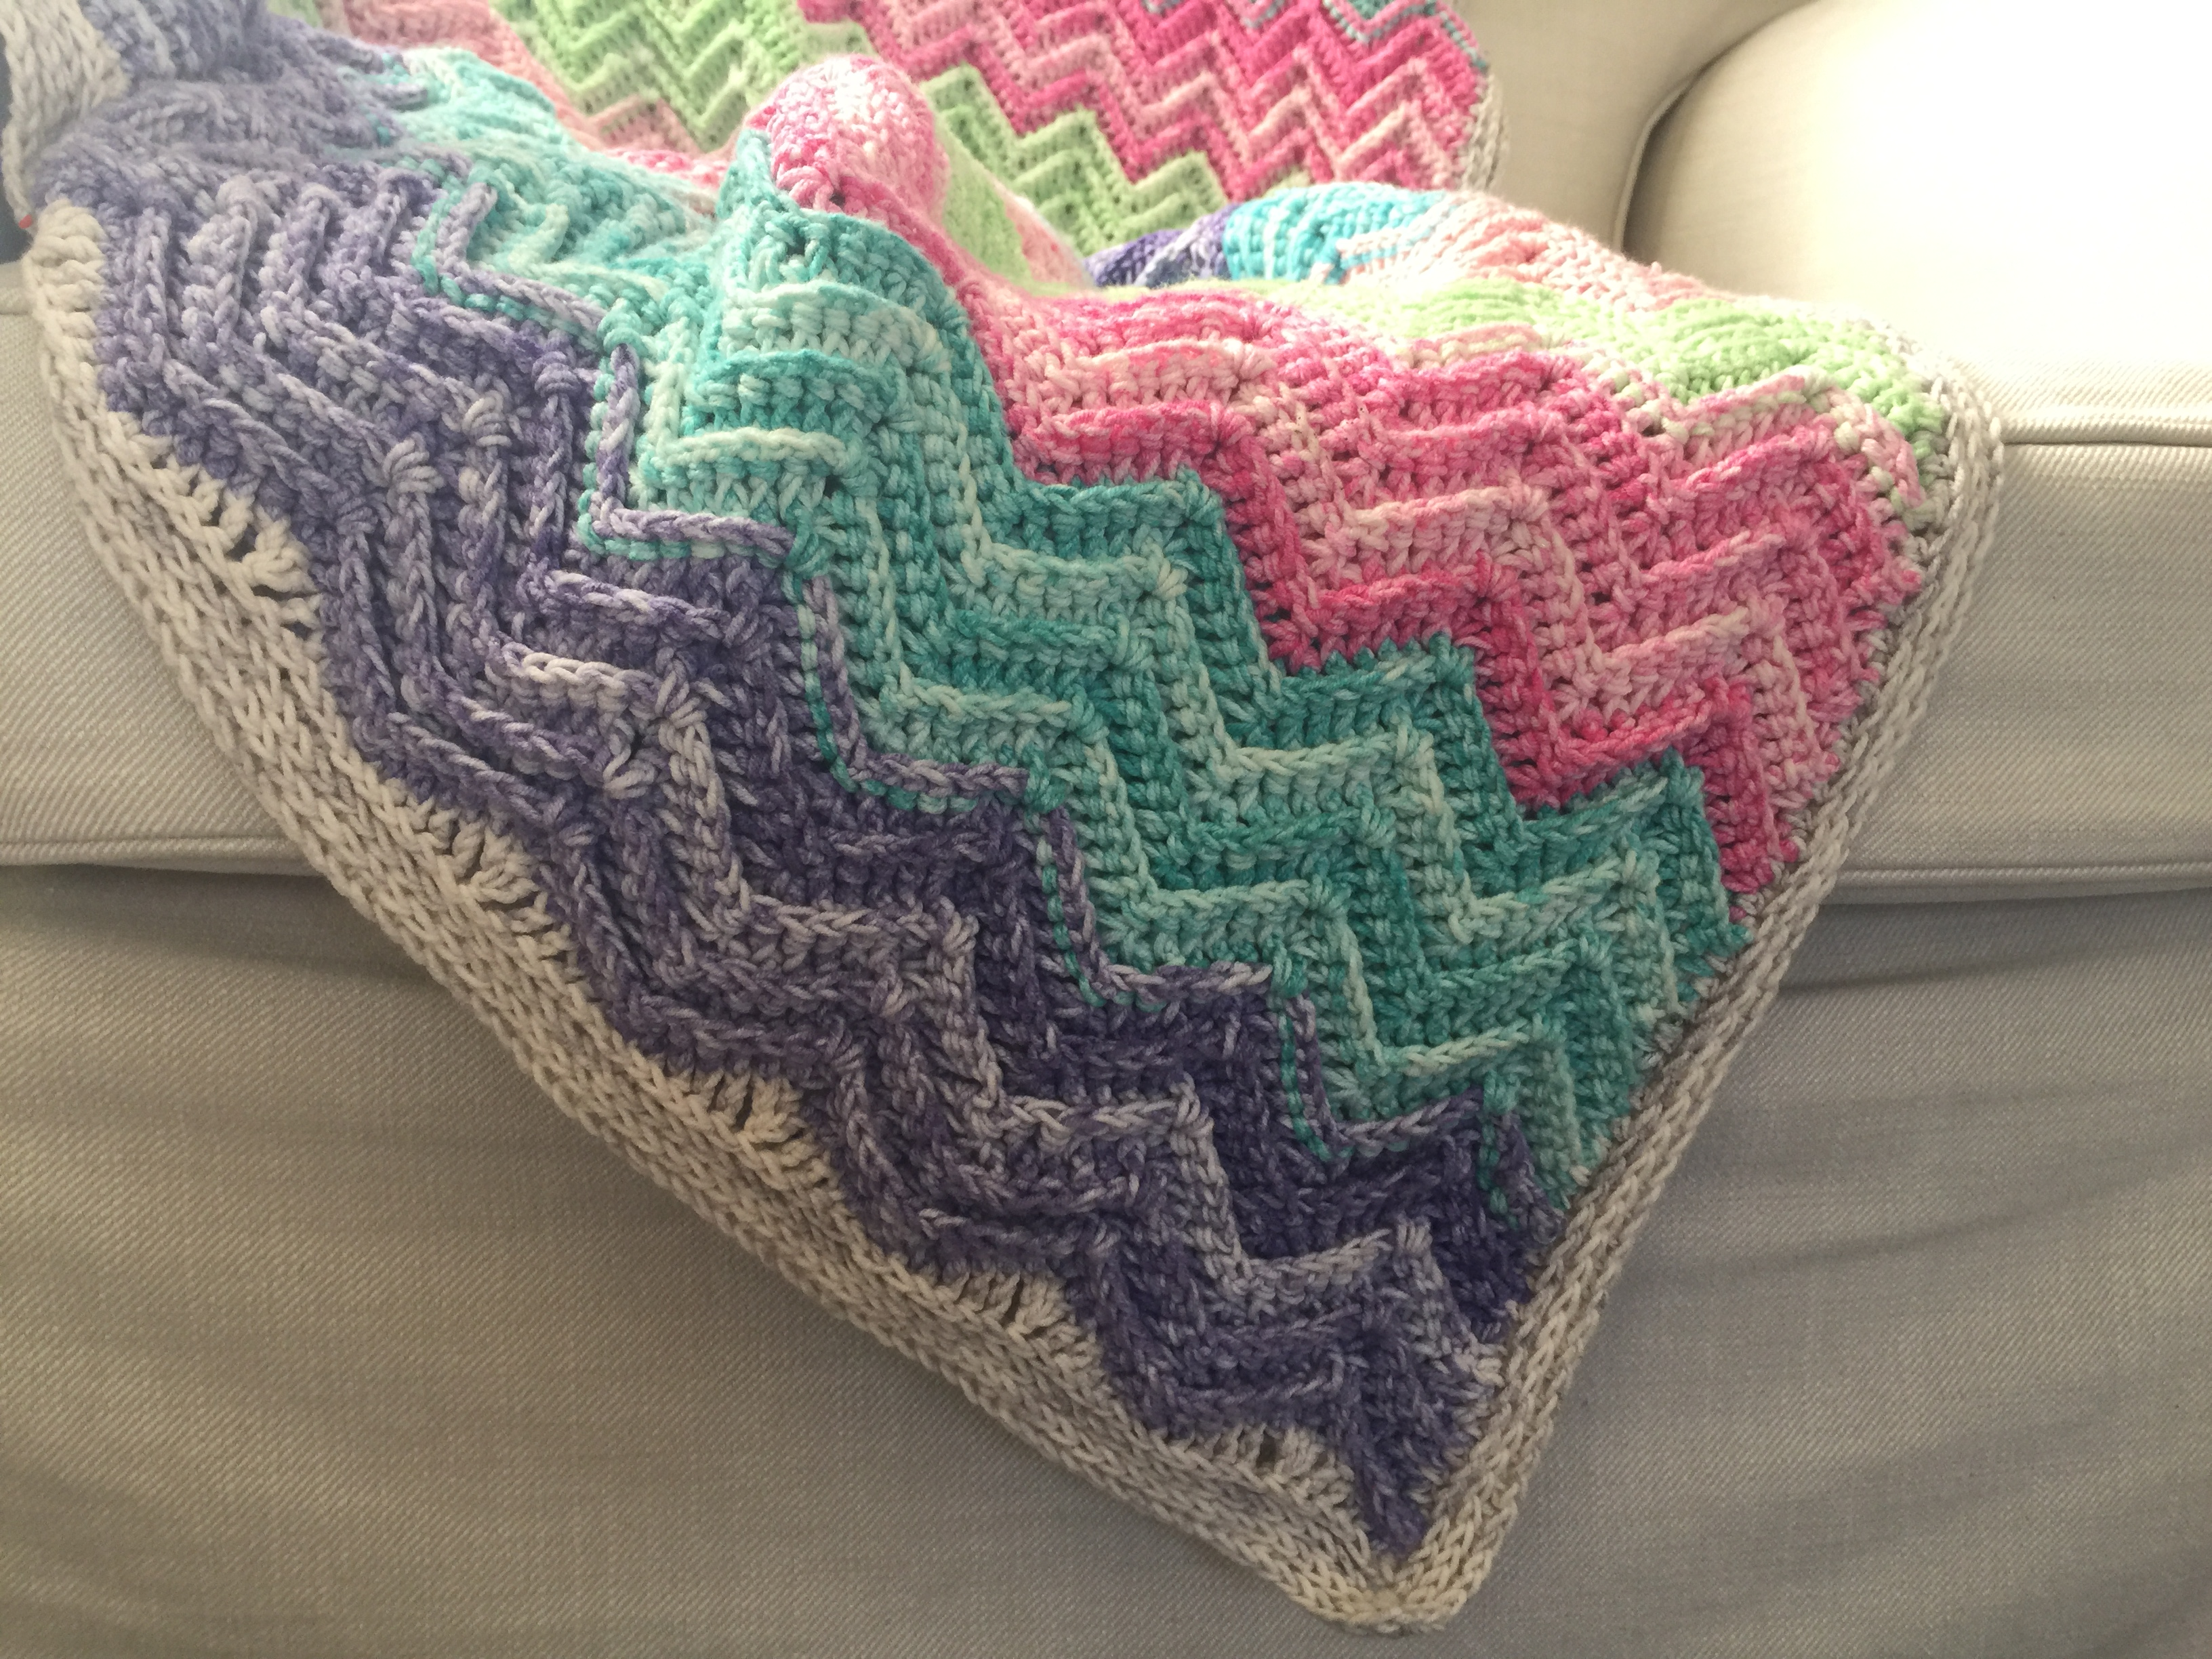 Textured Chevron Blanket, free pattern by Nerissa MuijsTextured Chevron Blanket, free pattern by Nerissa Muijs